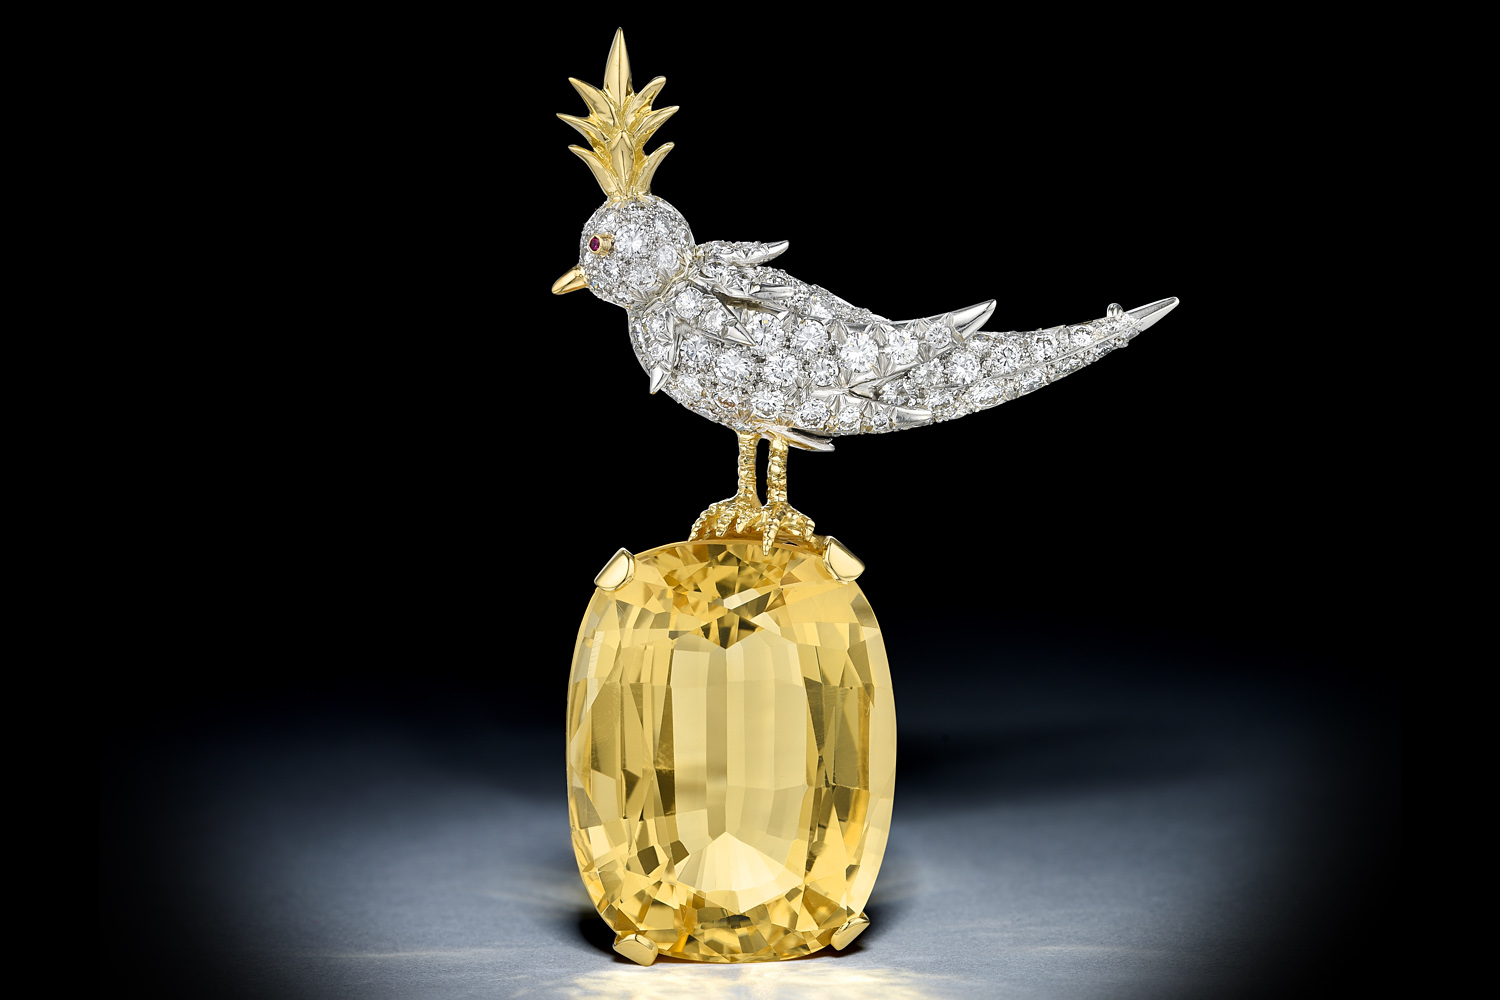 Tiffany & Co. Schlumberger Bird on a Rock Brooch - Fortuna NYC Fine Jewelry Auction